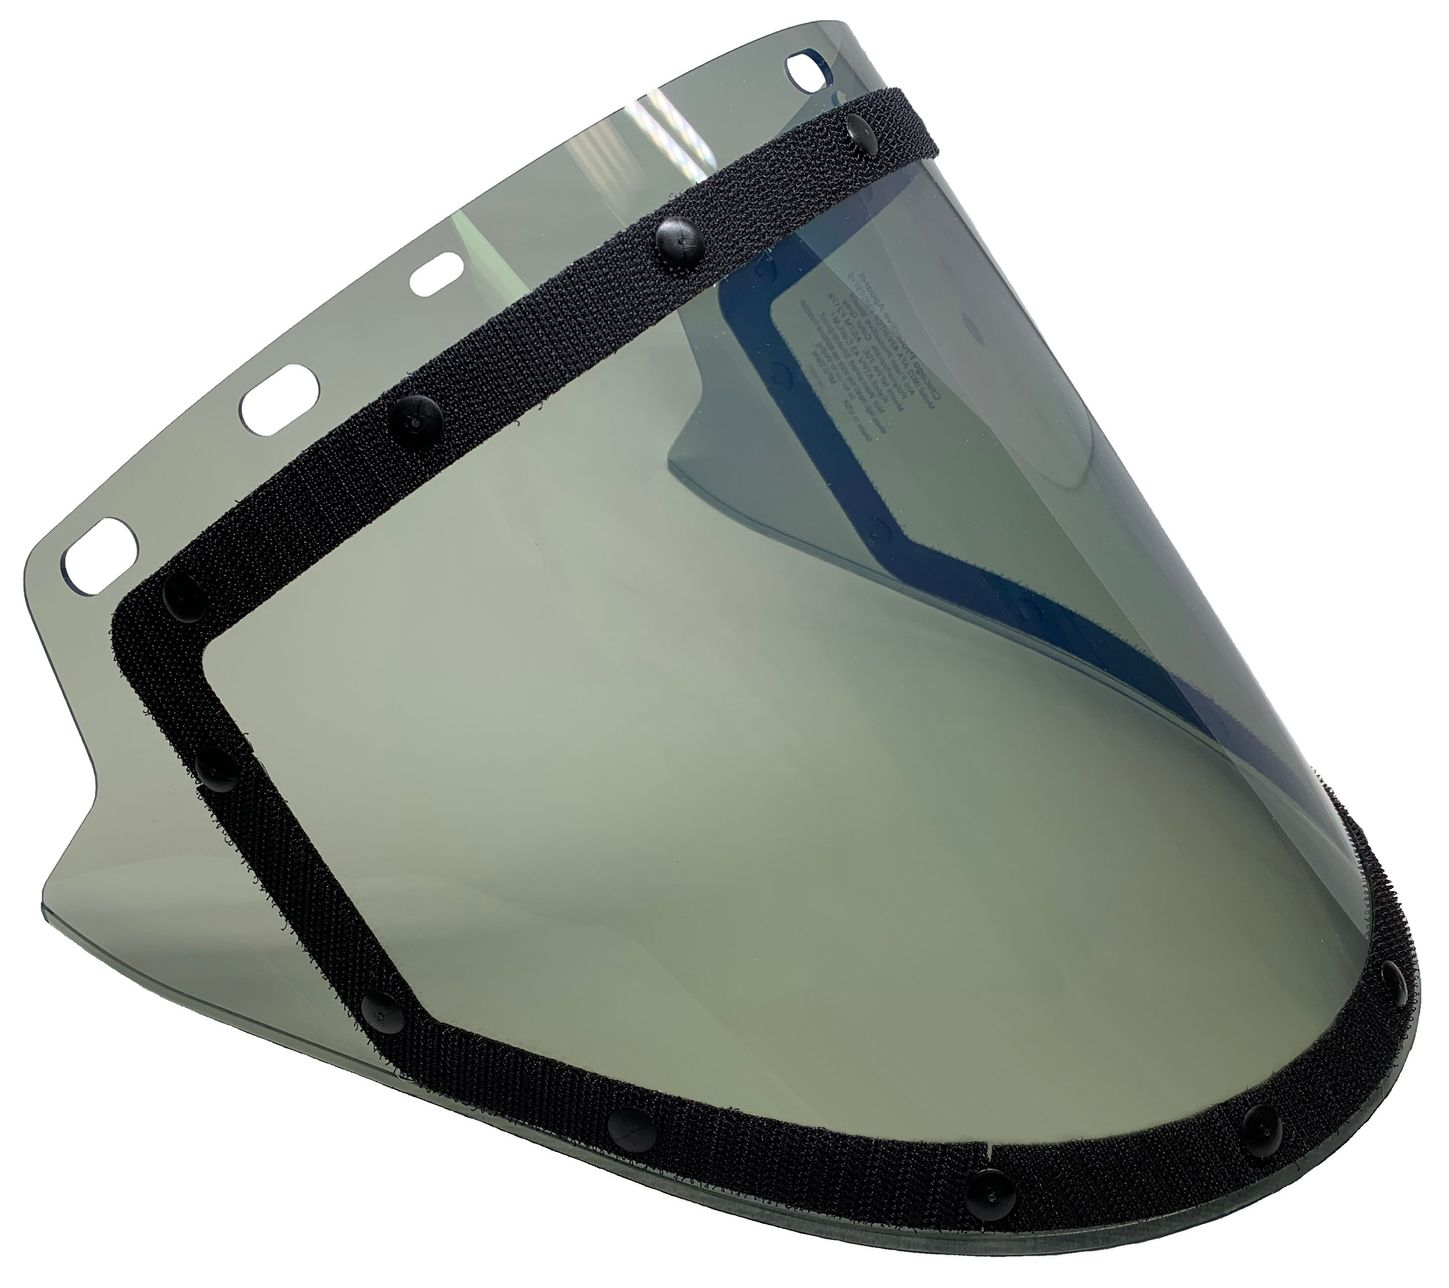 cpa-replacement-visors-for-overhoods-cpwv-arc-40htv-right.jpg